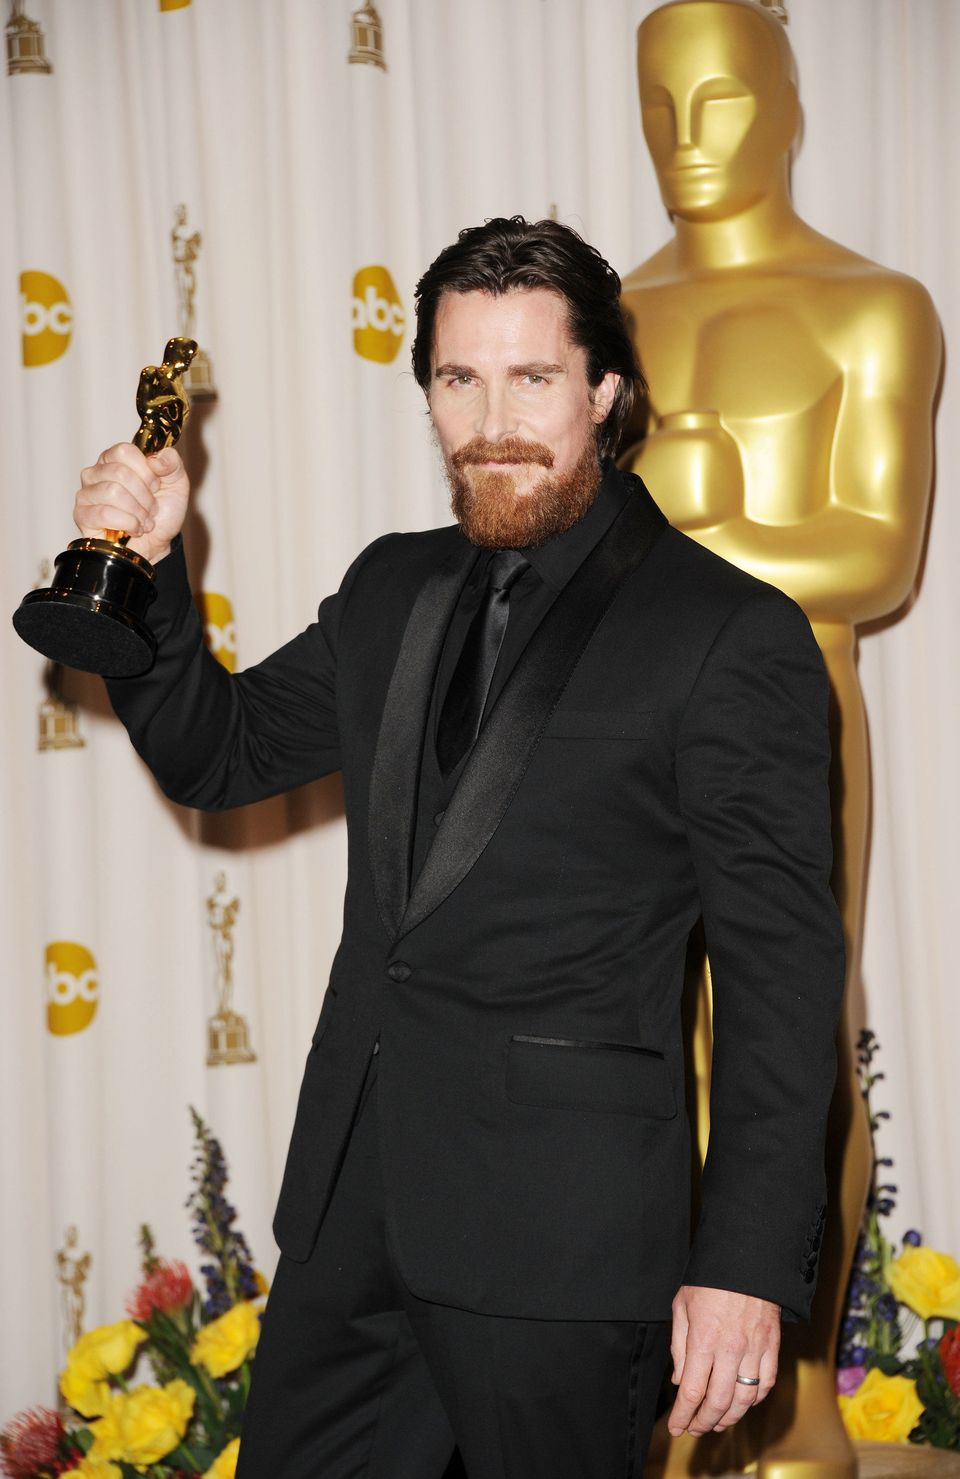 Christian Bale holds his Oscar statue after winning for his role in The